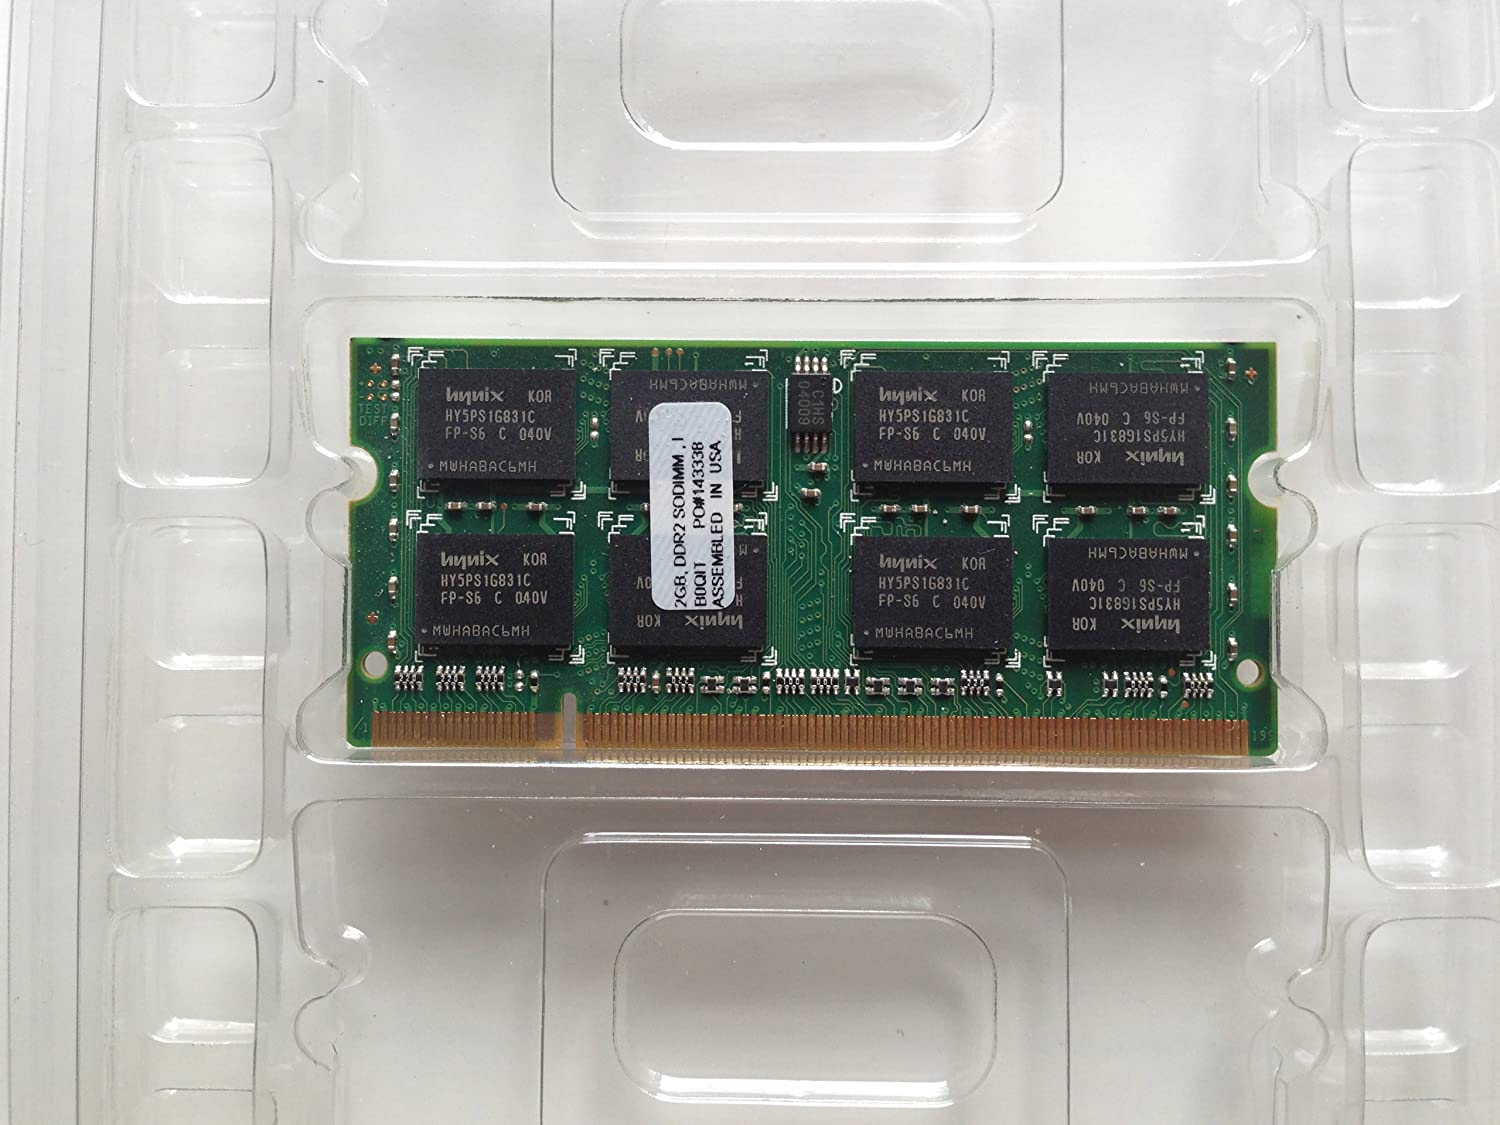 1GB DDR2-667 RAM Memory Upgrade for The Emachines//Gateway M Series M-6332 PC2-5300